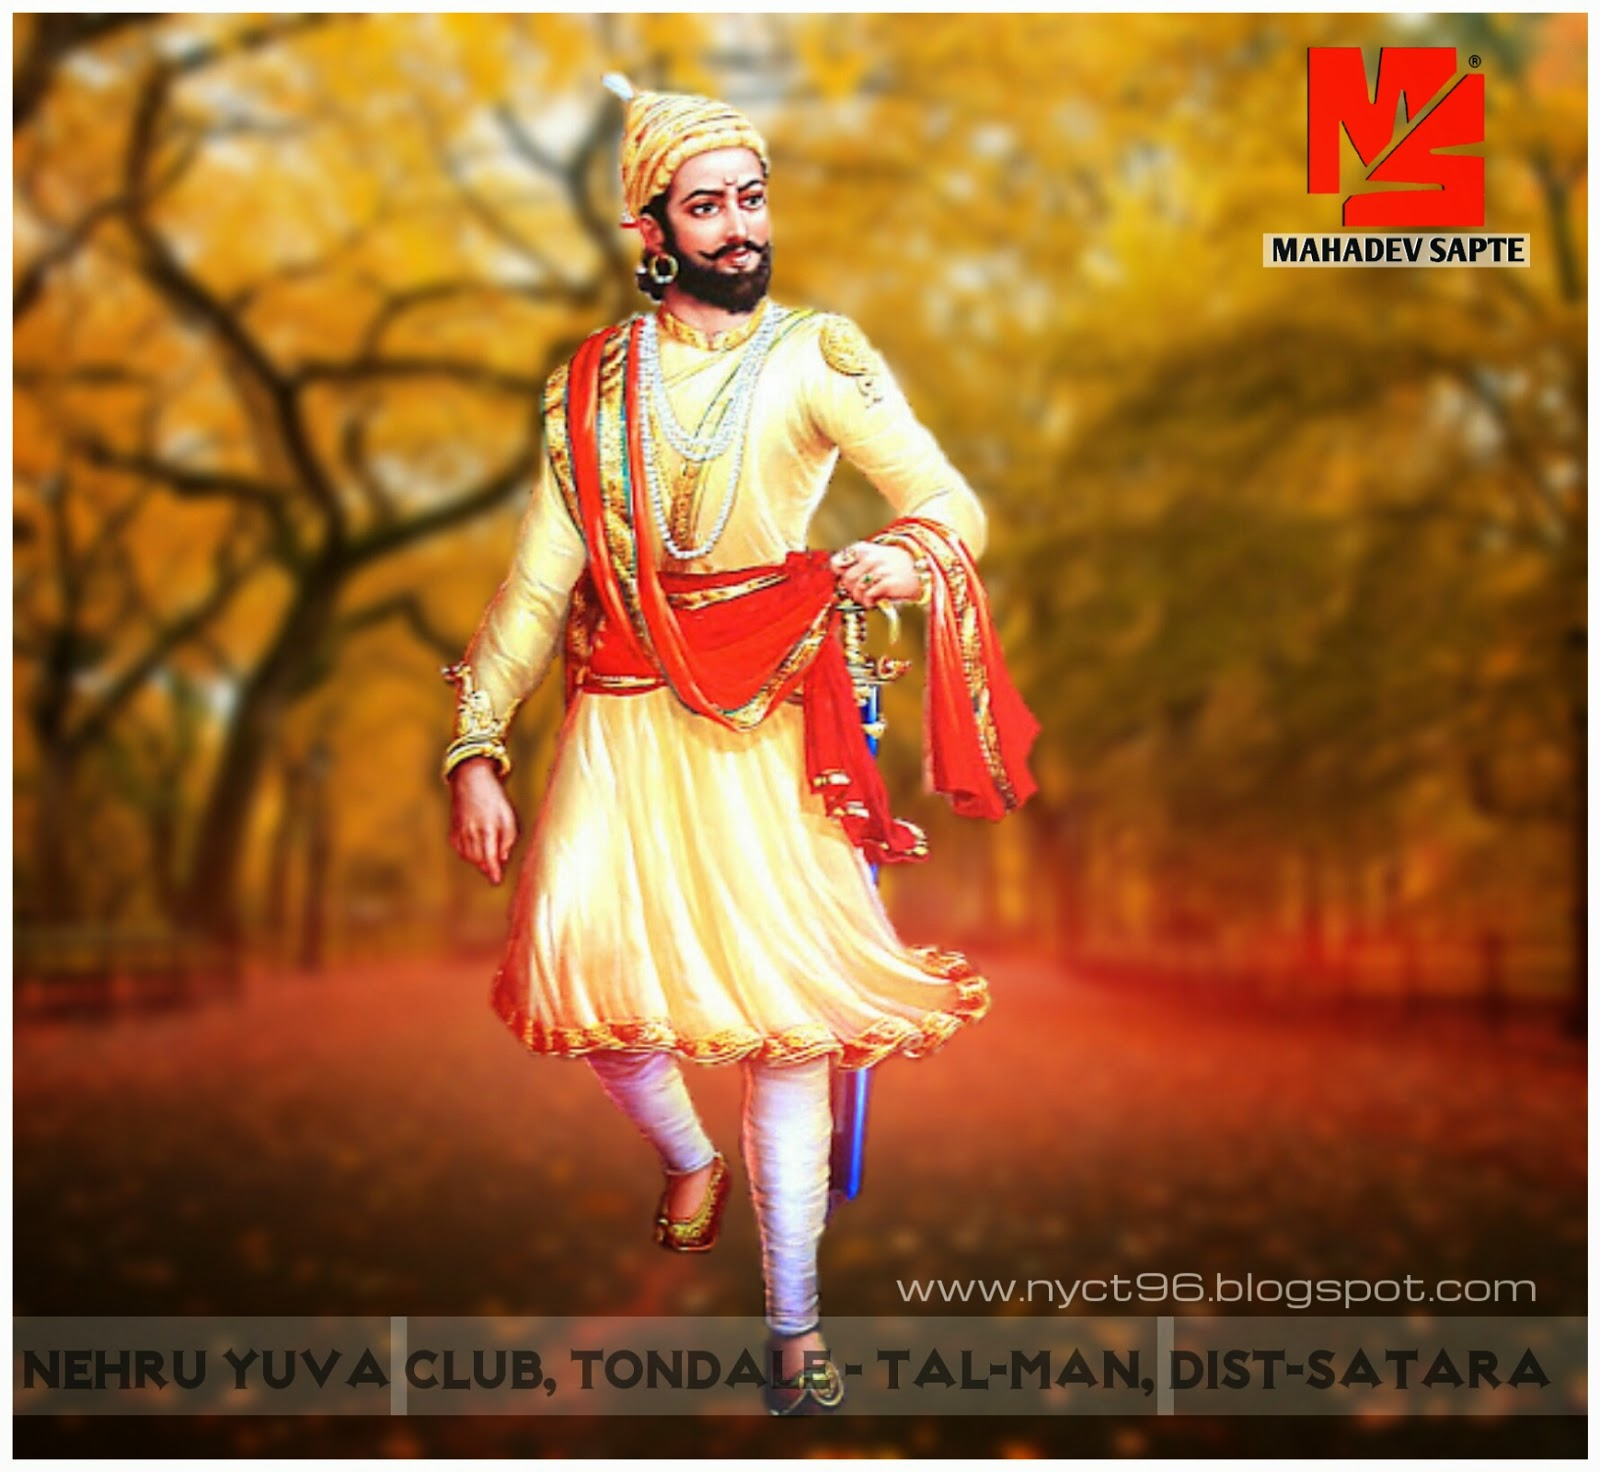 Hd wallpaper shivaji maharaj - Shivaji Maharaj Full Hd Photo